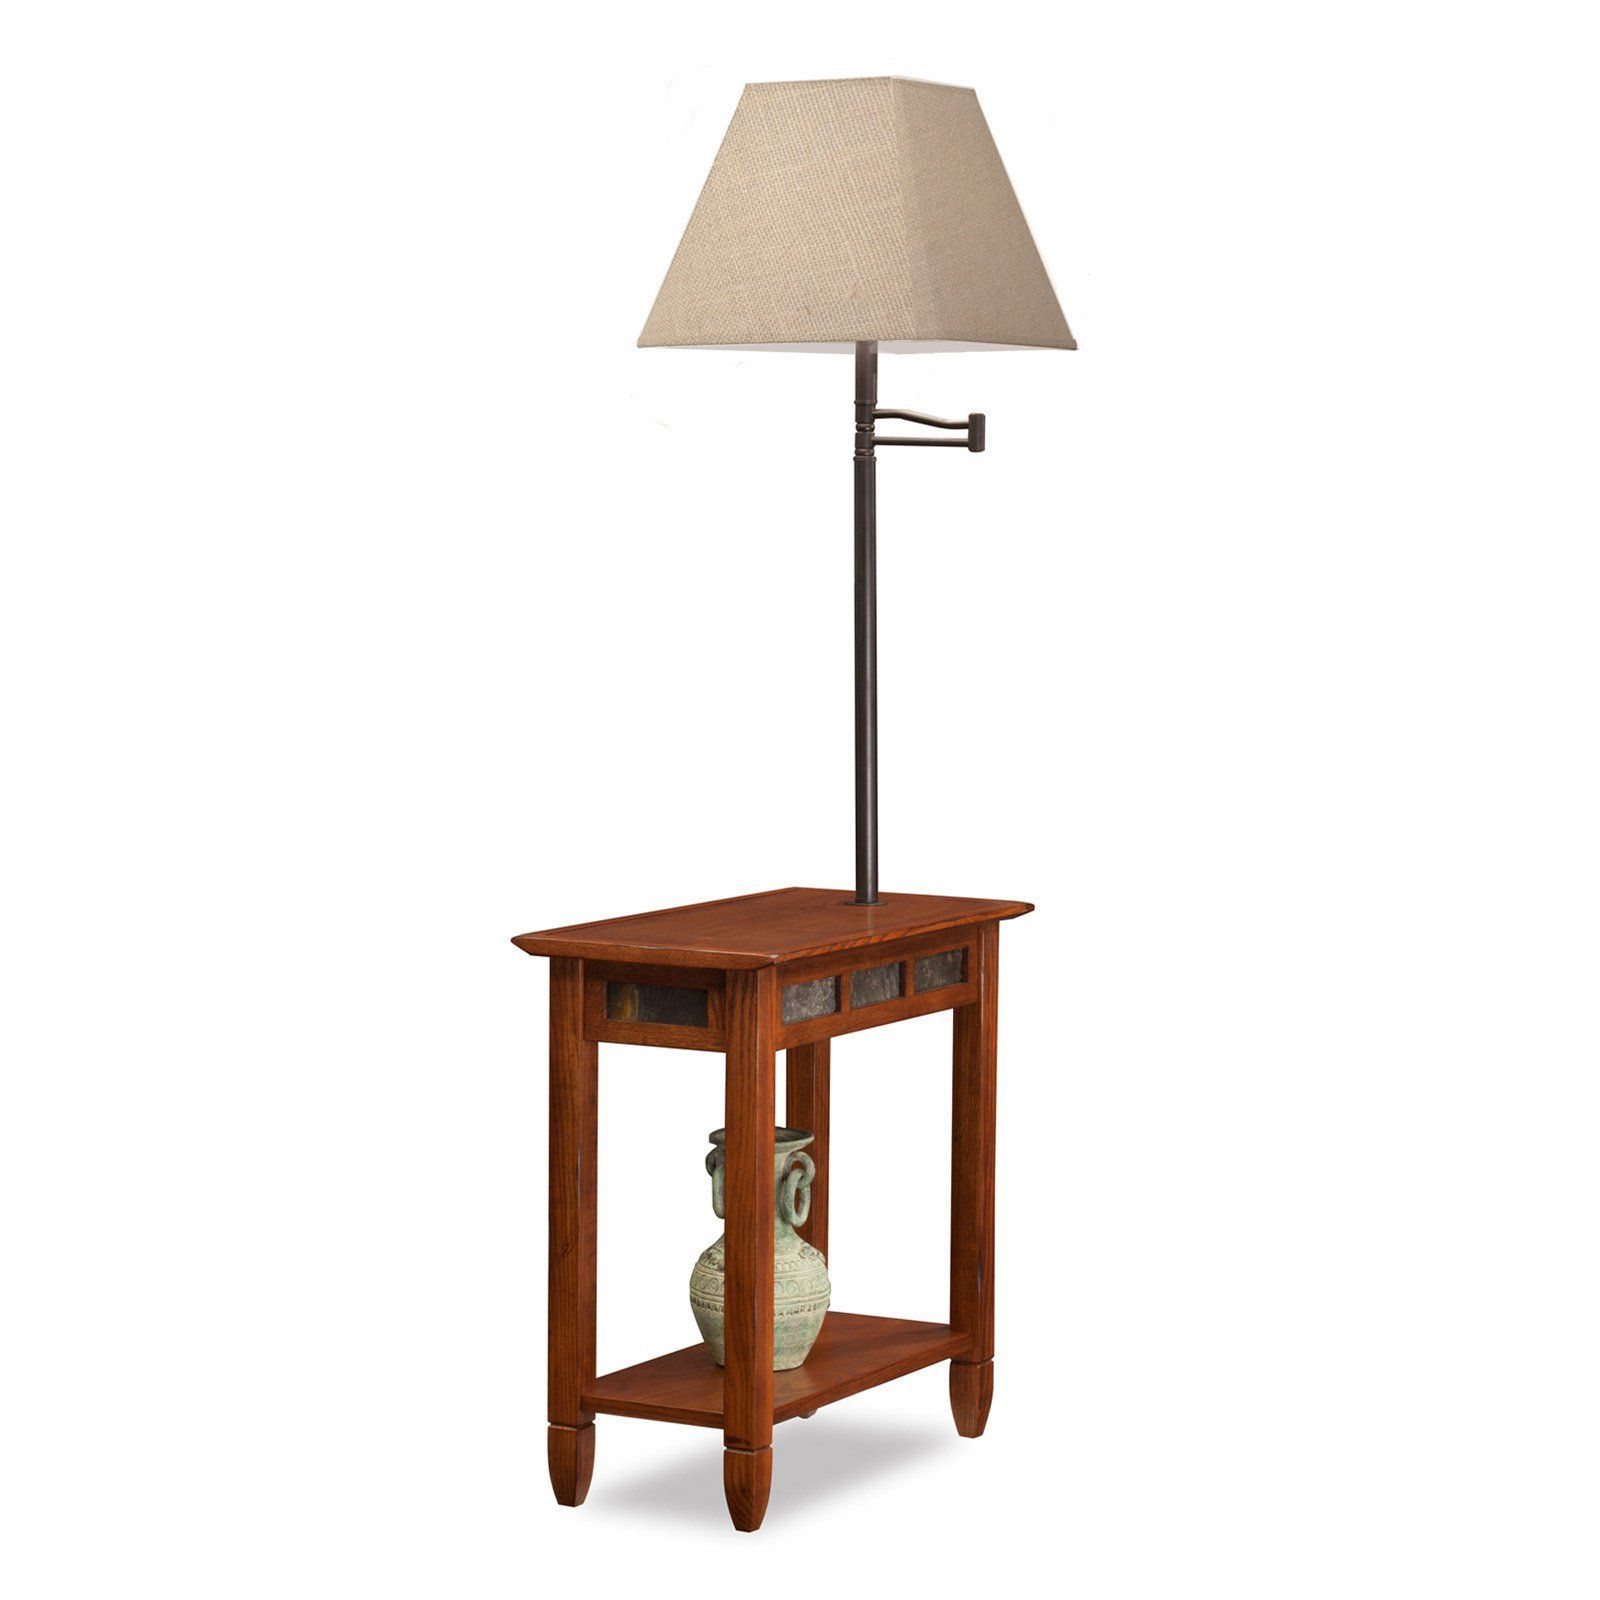 Leick Favorite Finds Rustic Slate Chairside Lamp End Table Rich